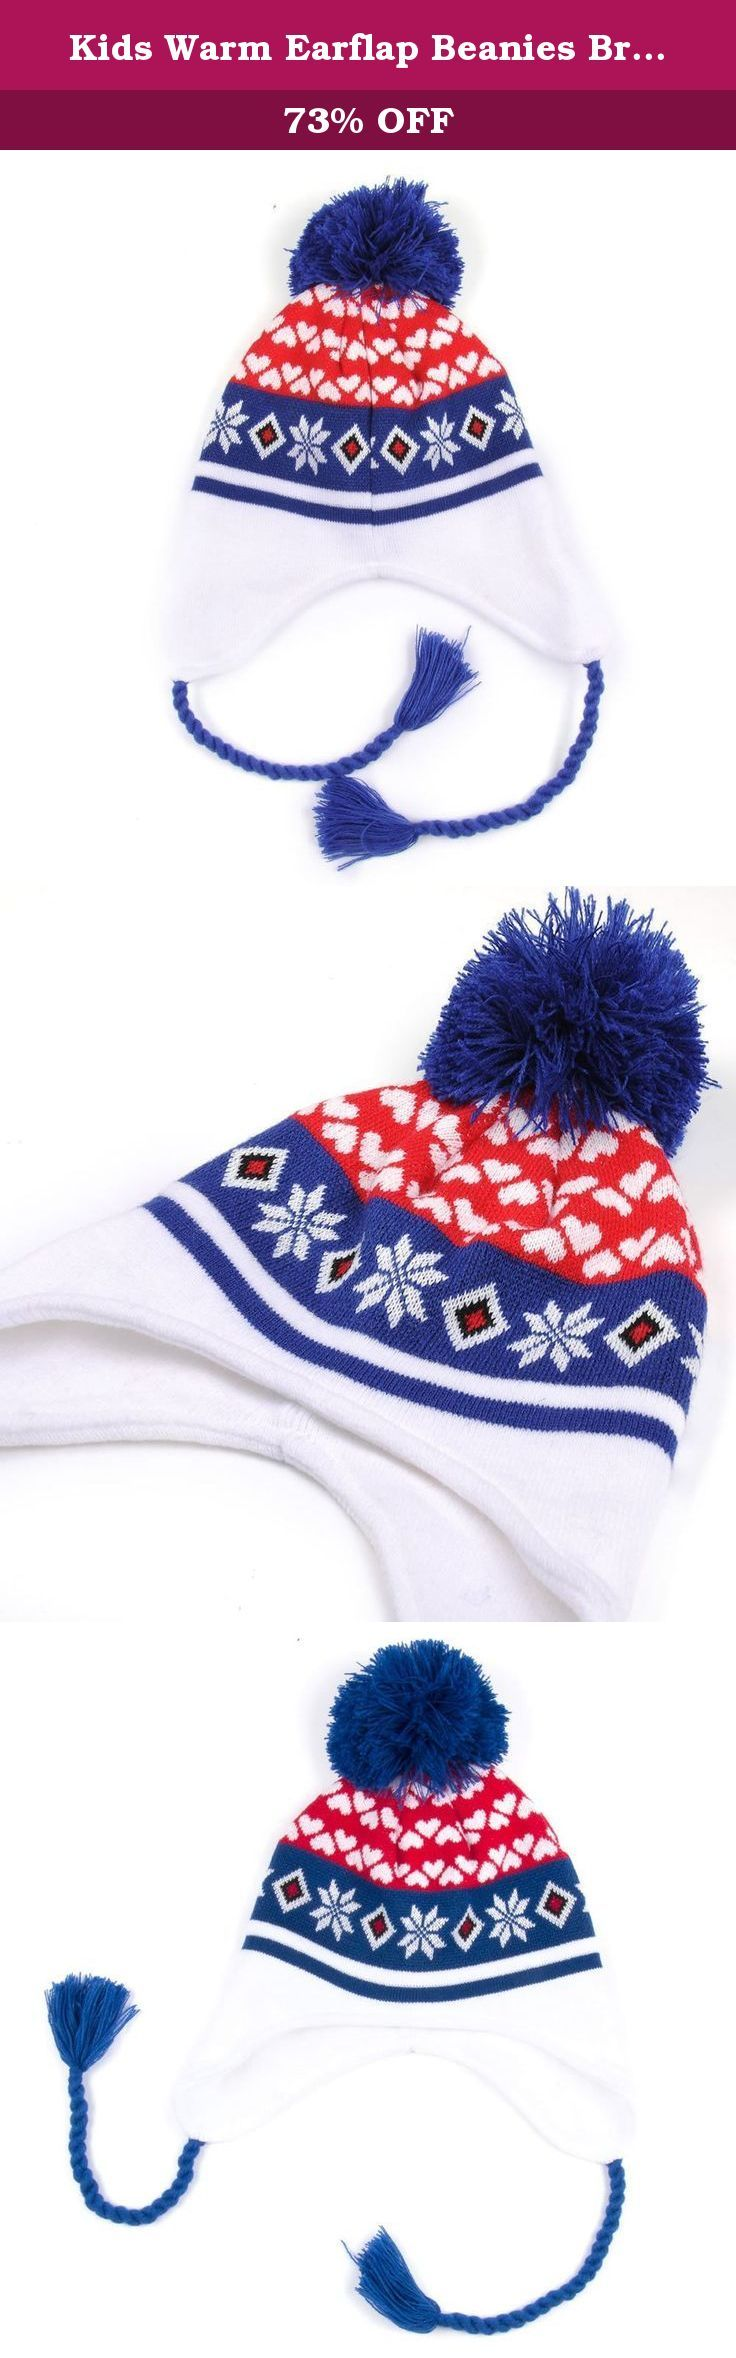 Kids Warm Earflap Beanies Braid Ear Cover Girl boy Daily Soft Knit Hat Cute- Best for Sports and Outdoors, skateboard, Ski, Game, - Keep Dry and Comfortable ... (Blue-b). This Kids beanie size: 9.5 in(L)*7.0 in(H), One size fit most boy and girl head (6 1/2# - 6 3/4#), Hat weight is 0.2 lb This beanie is manufactured by high quality 100% Acrylic outer Which makes it light weight and adorable to use, the benefit of the beanie earflap which keep out the wind cute adorable knit beanie to…